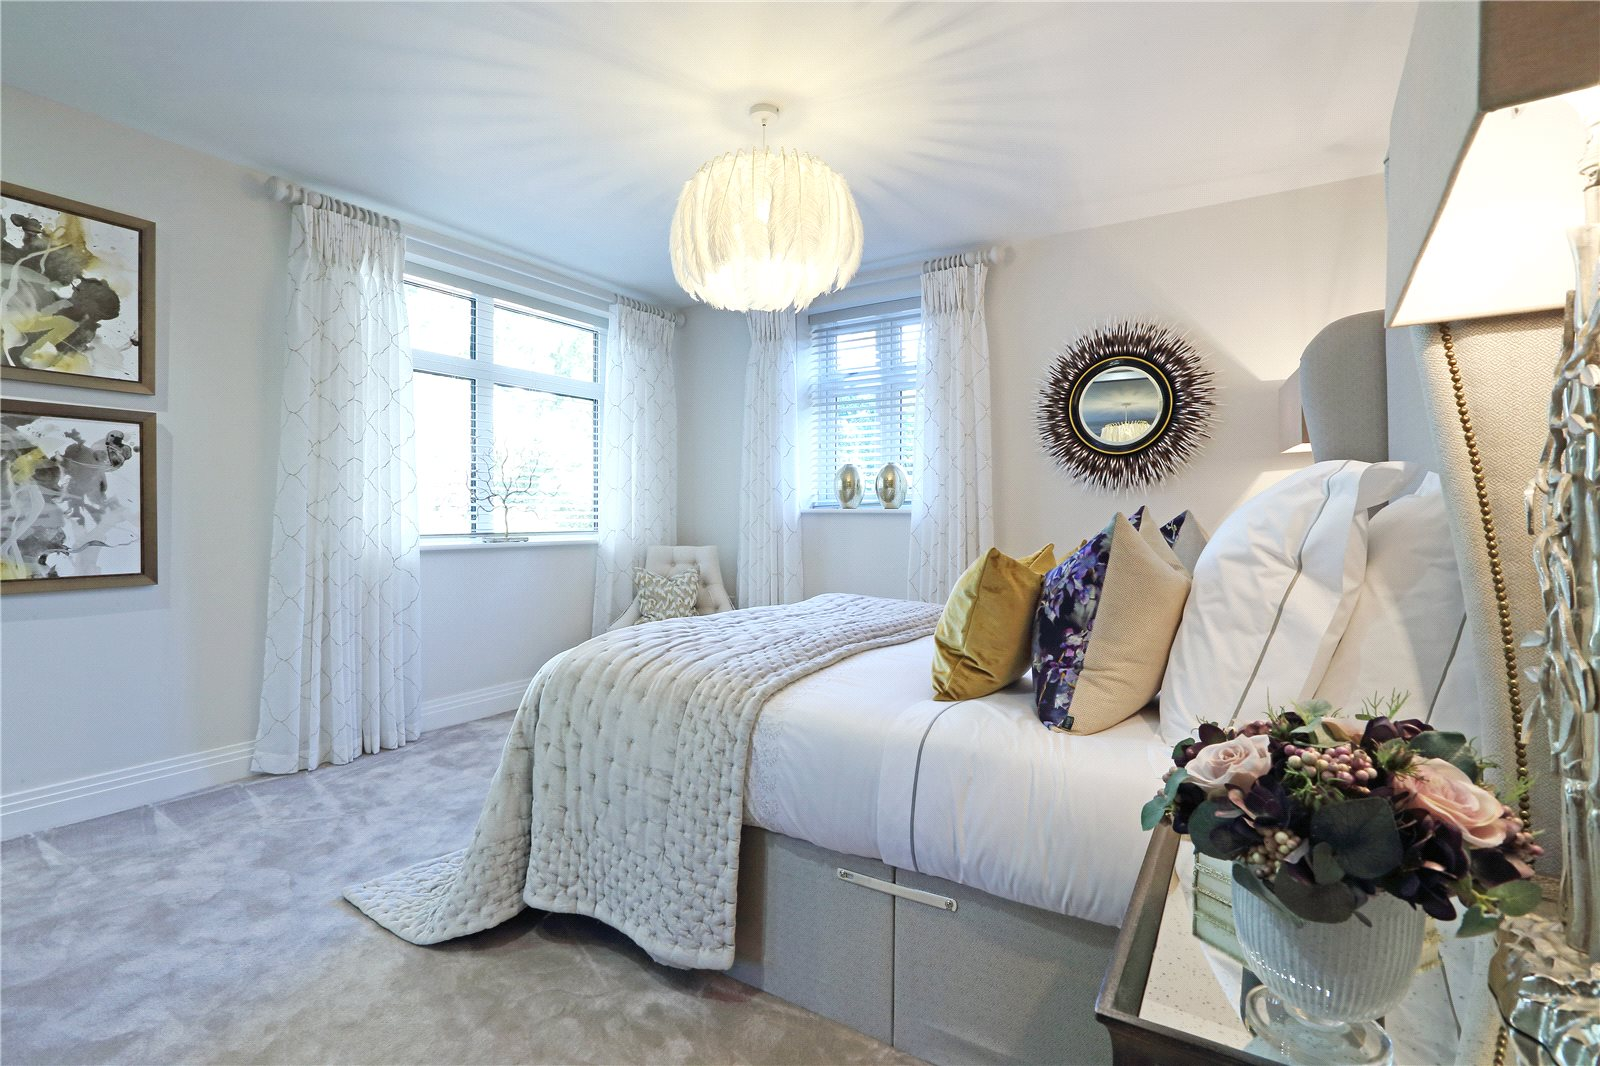 Additional photo for property listing at Scholars Place, South Park Drive, Gerrards Cross, Buckinghsmahire, SL9 Angleterre